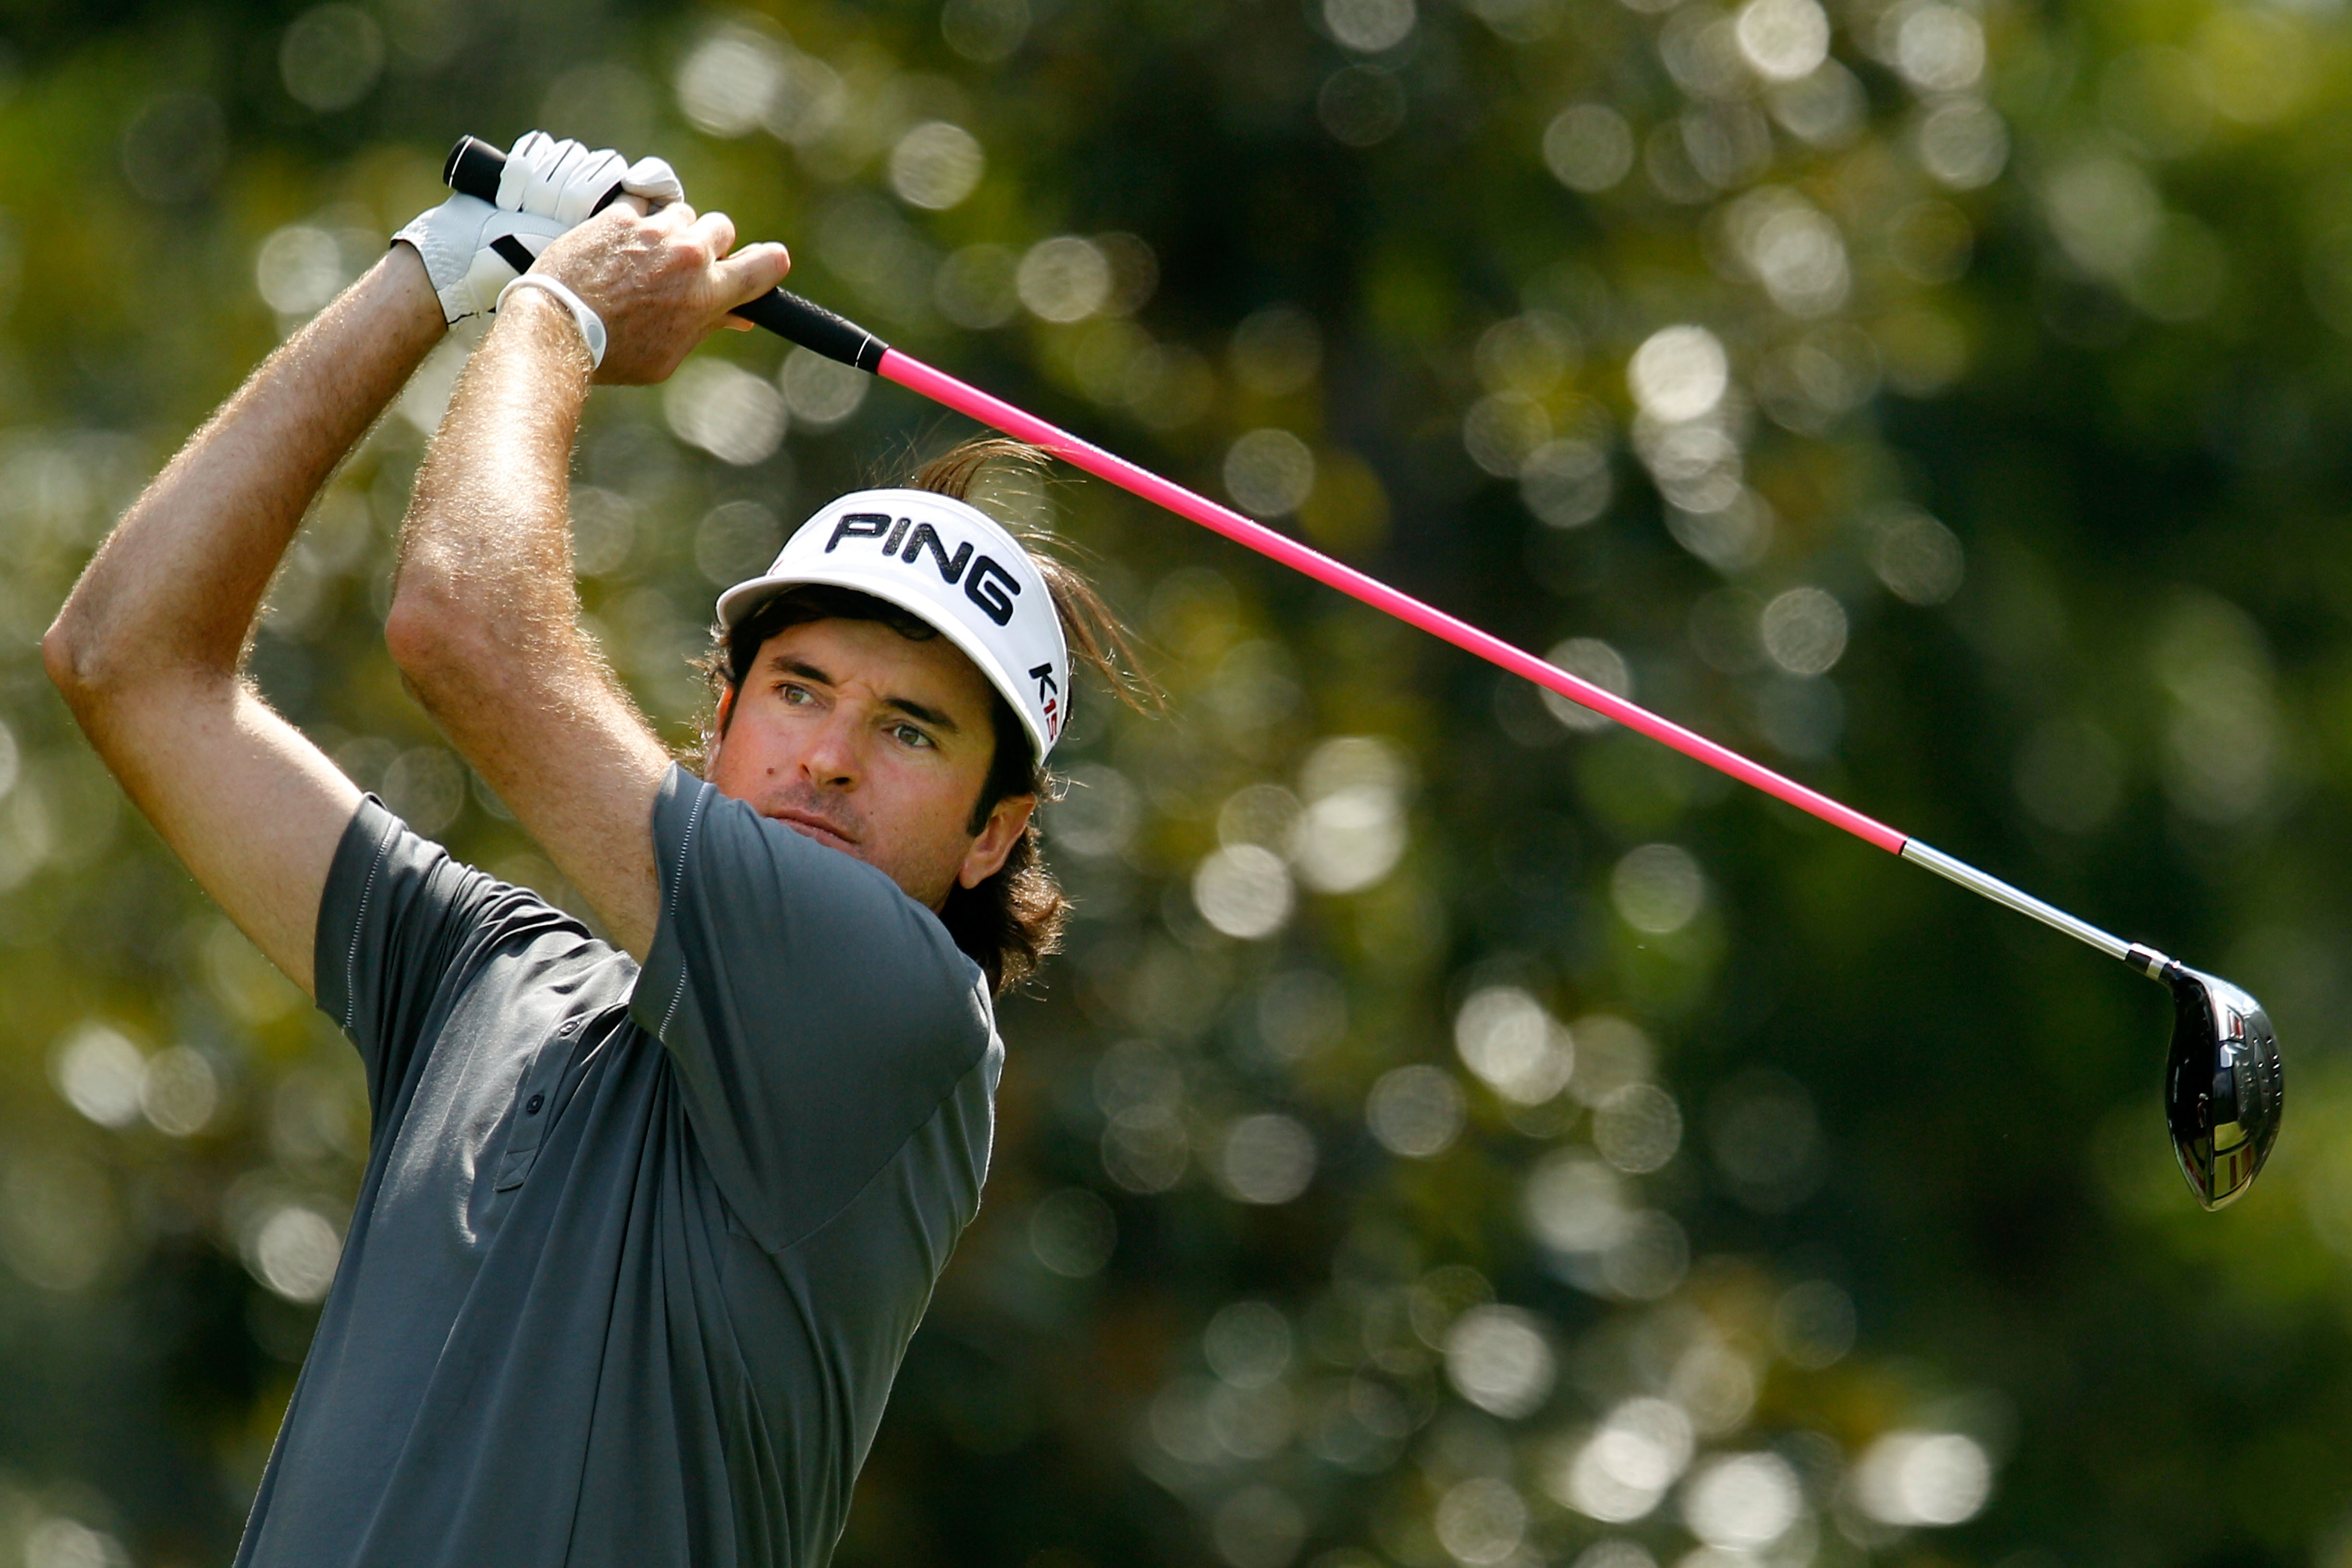 ATLANTA - SEPTEMBER 23:  Bubba Watson hits his tee shot on the eighth hole during the first round of THE TOUR Championship presented by Coca-Cola at East Lake Golf Club on September 23, 2010 in Atlanta, Georgia.  (Photo by Scott Halleran/Getty Images)